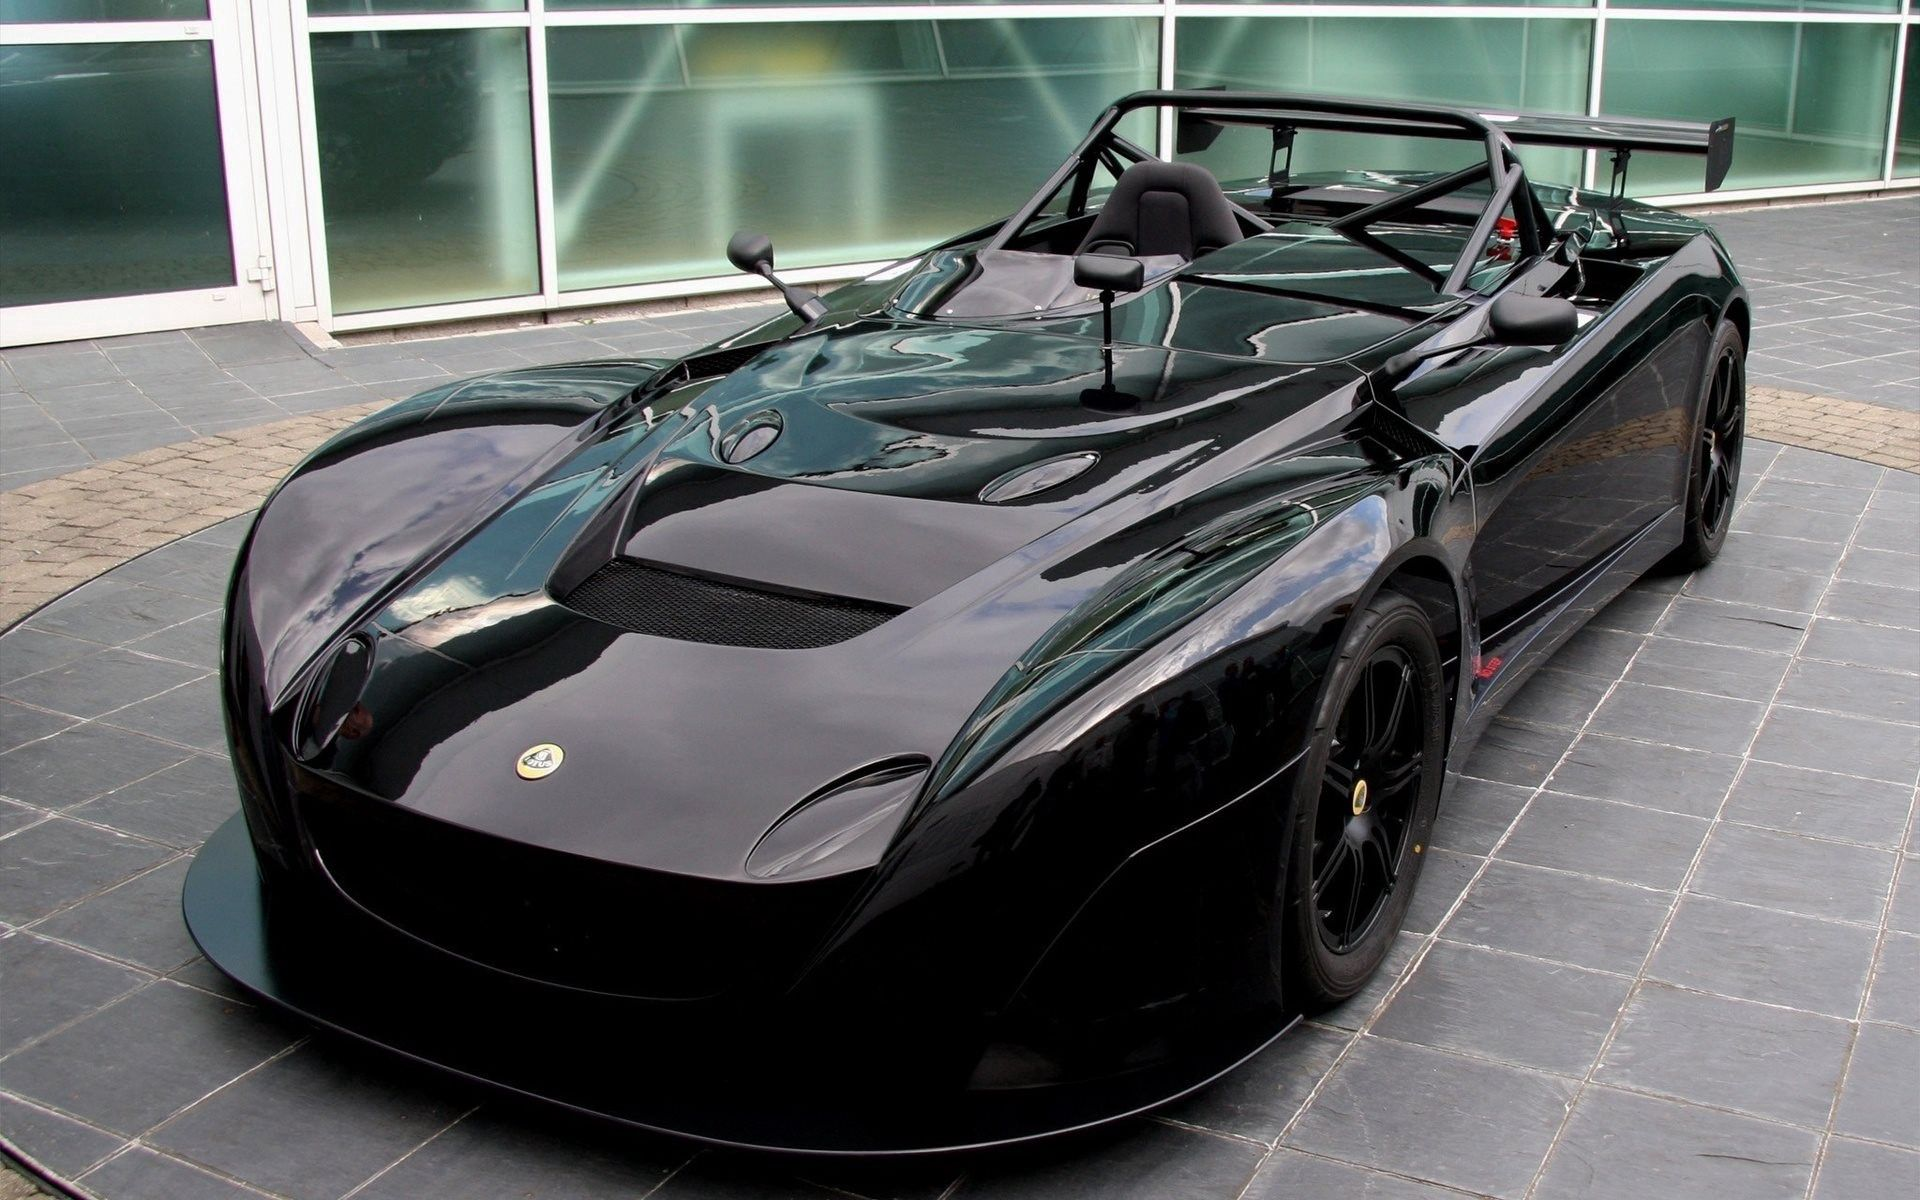 150248 download wallpaper Sports, Auto, Lotus, Cars, Front View, Sports Car, Cabriolet screensavers and pictures for free